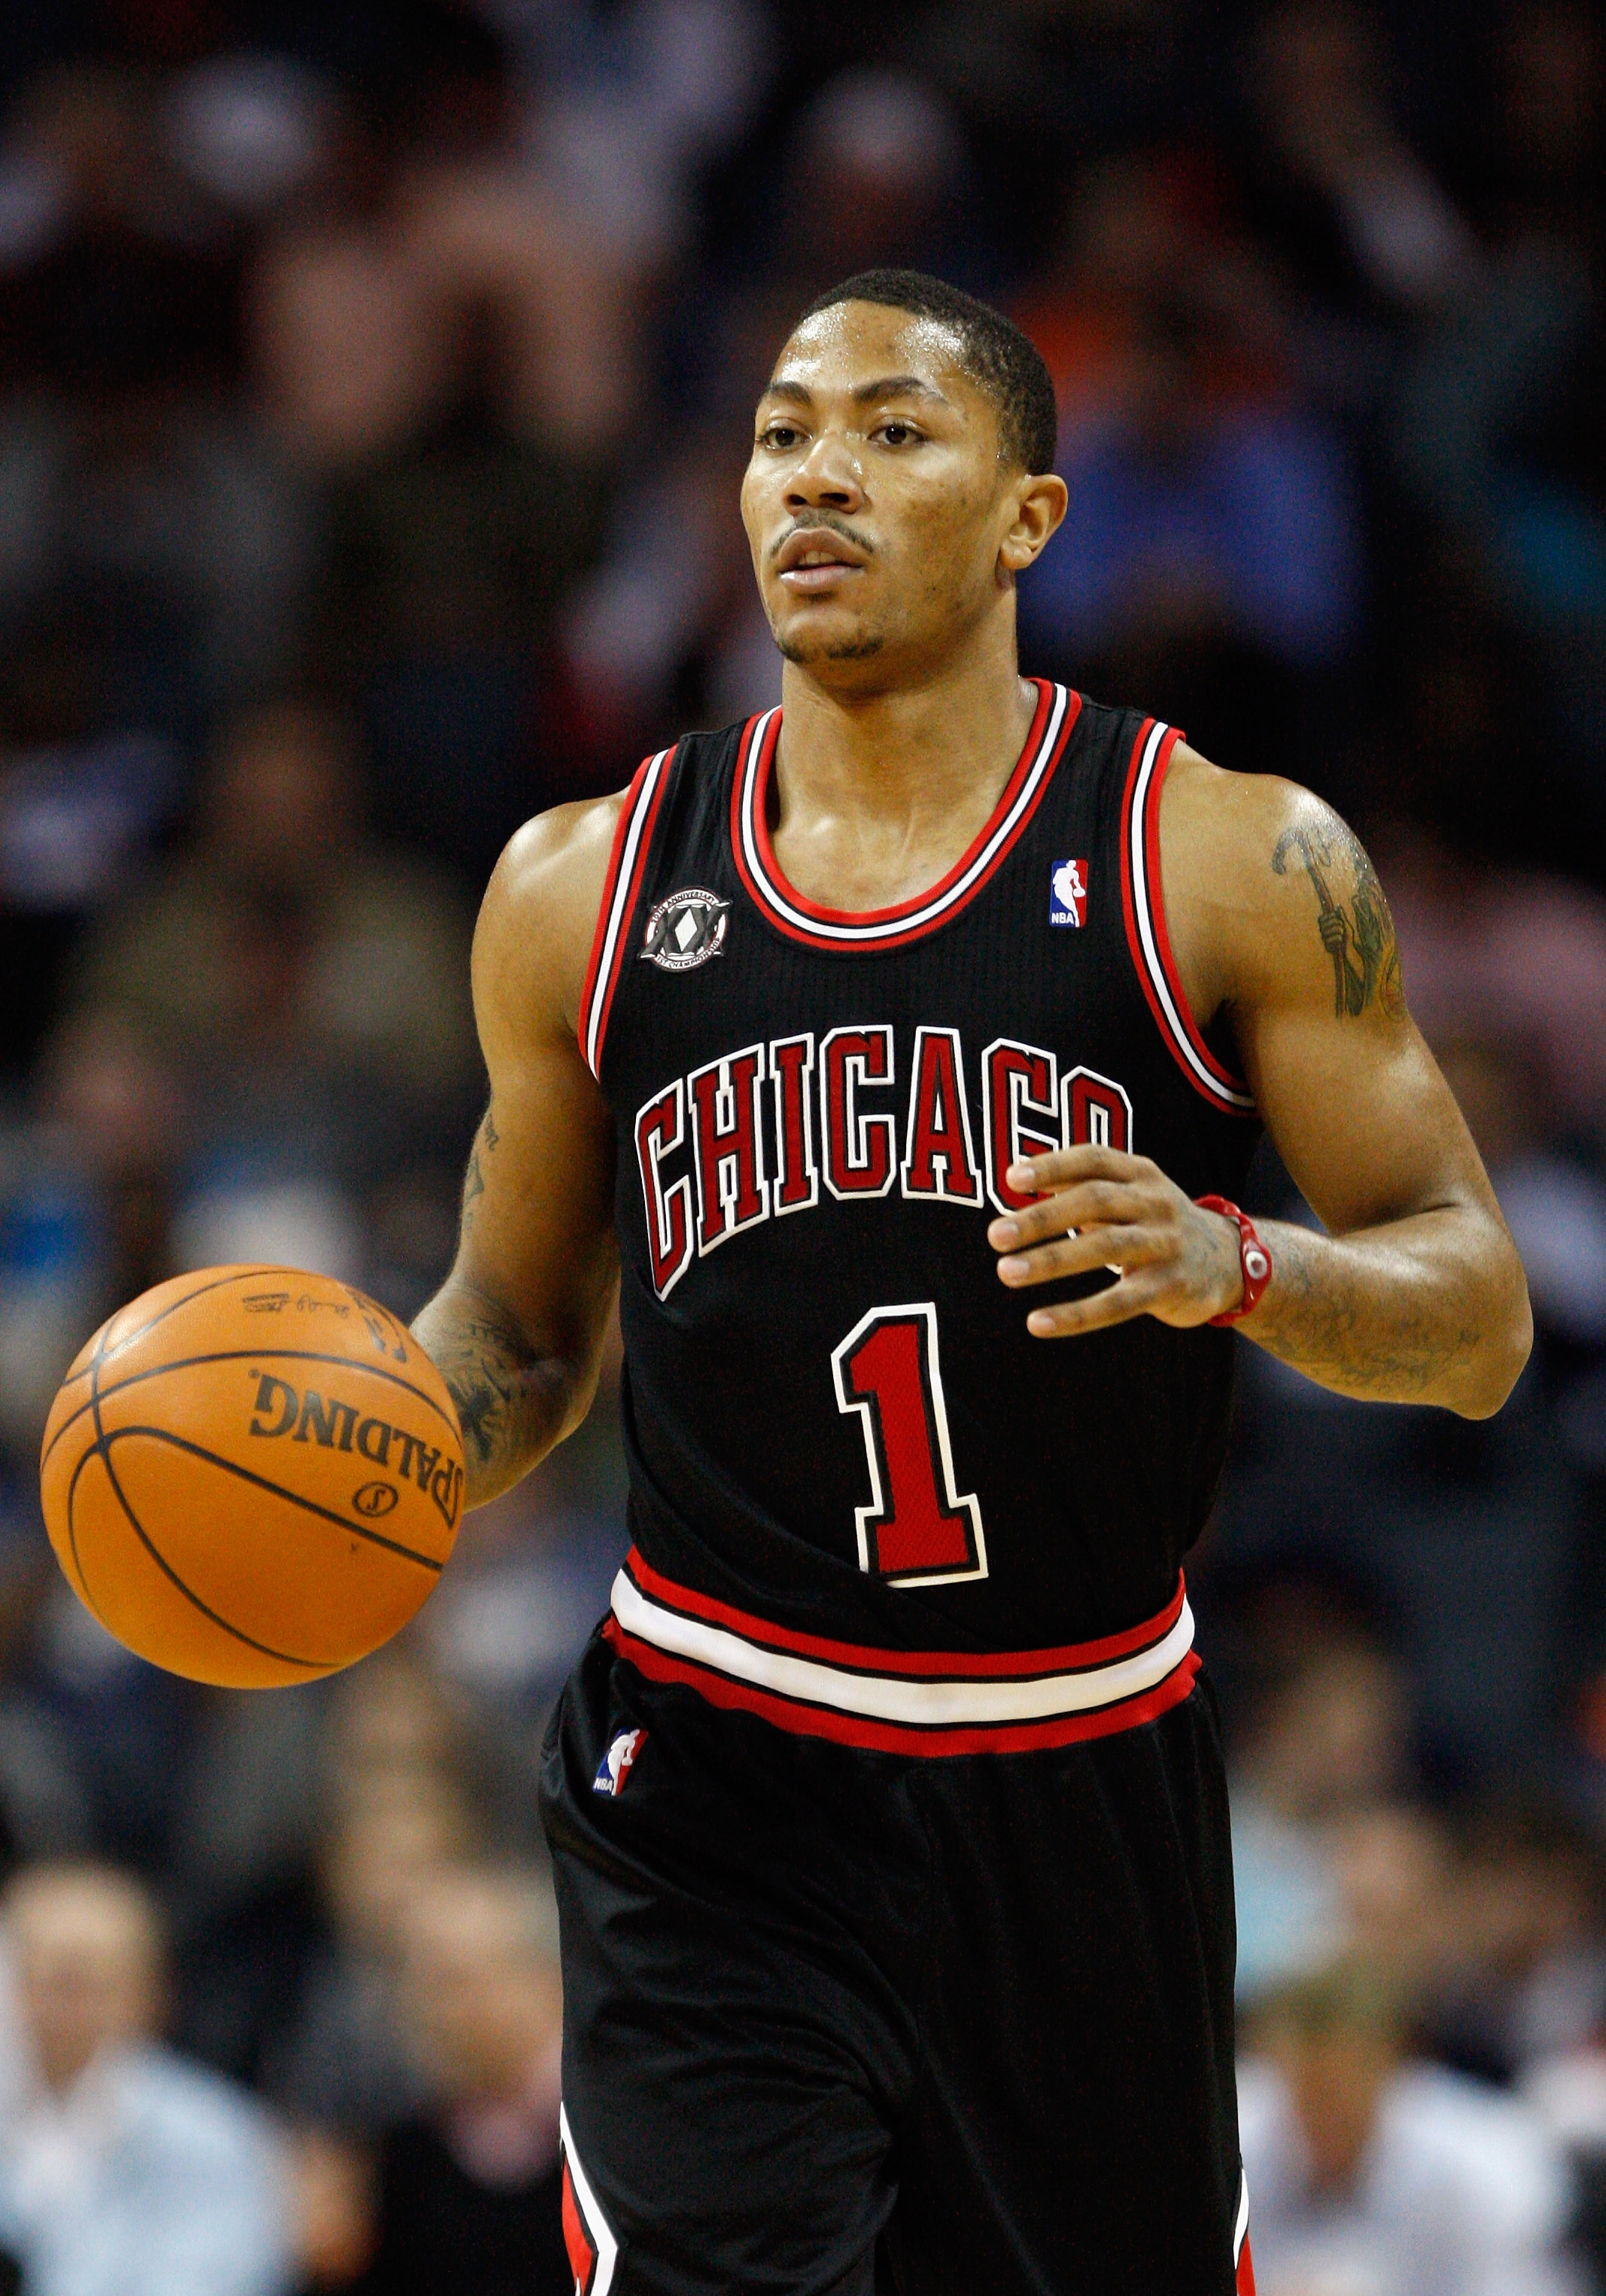 CHARLOTTE, NC - JANUARY 12:  Derrick Rose #1 of the Chicago Bulls dribbles up the court against the Charlotte Bobcats during their game at Time Warner Cable Arena on January 12, 2011 in Charlotte, North Carolina. NOTE TO USER: User expressly acknowledges